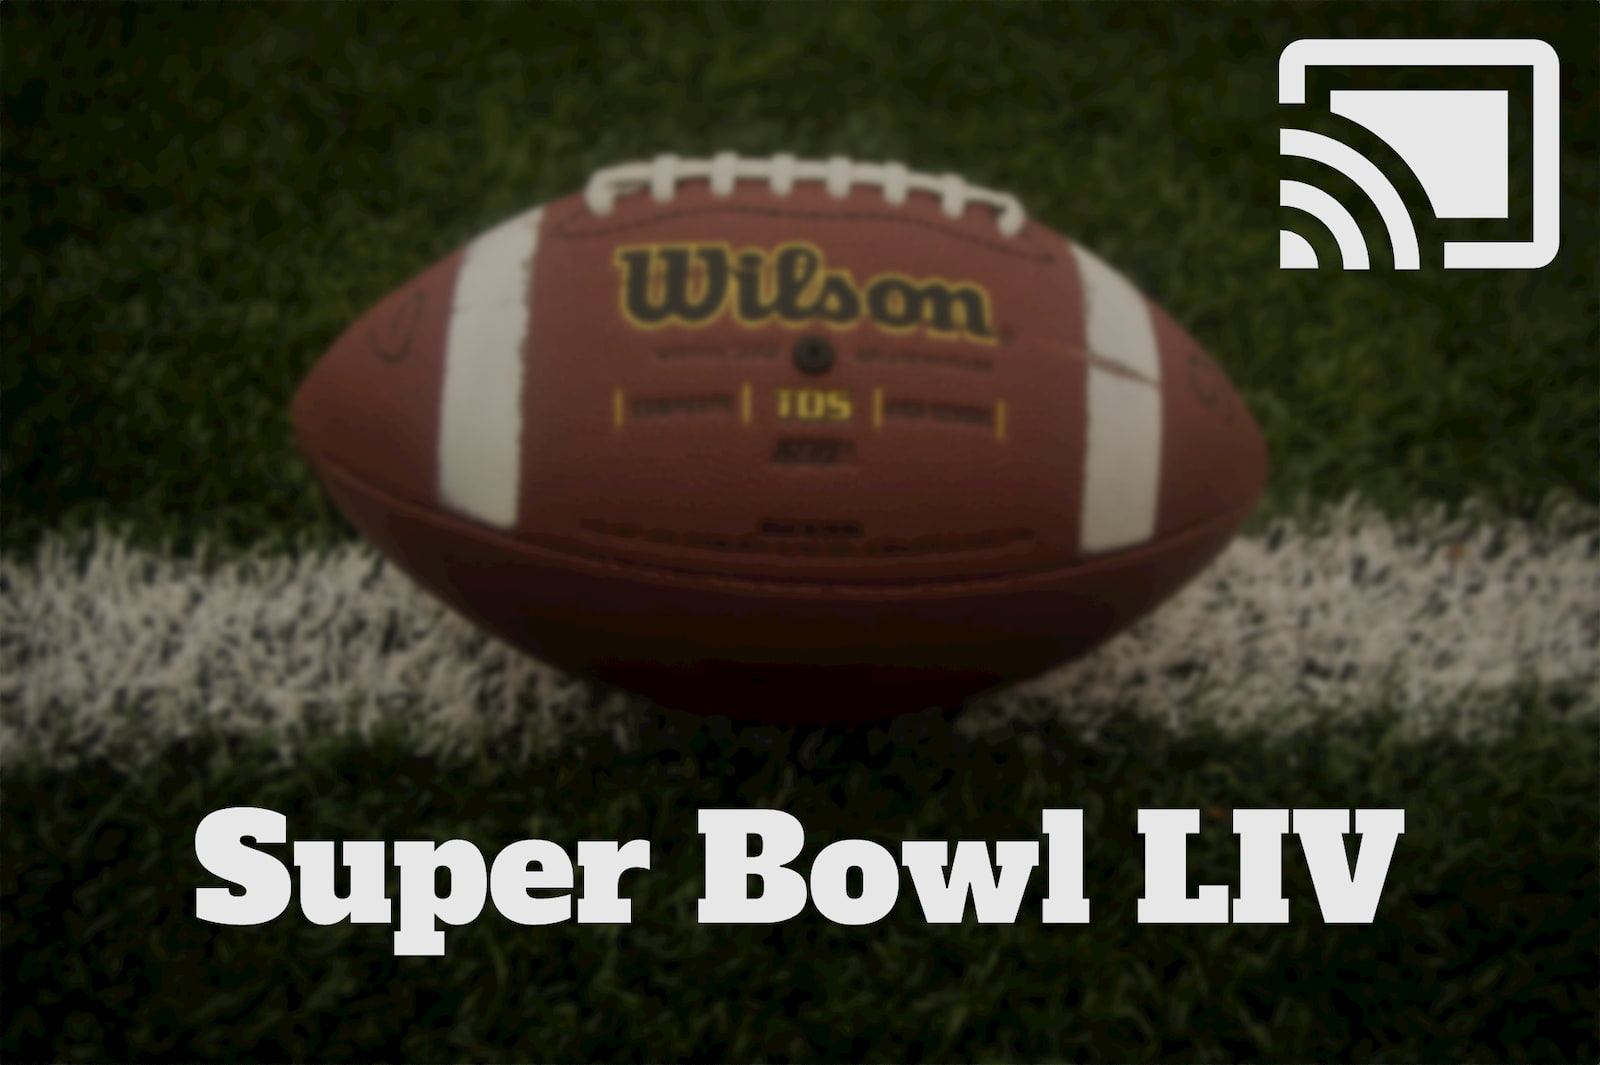 Stream Super Bowl LIV for free with your Chromecast and FOX